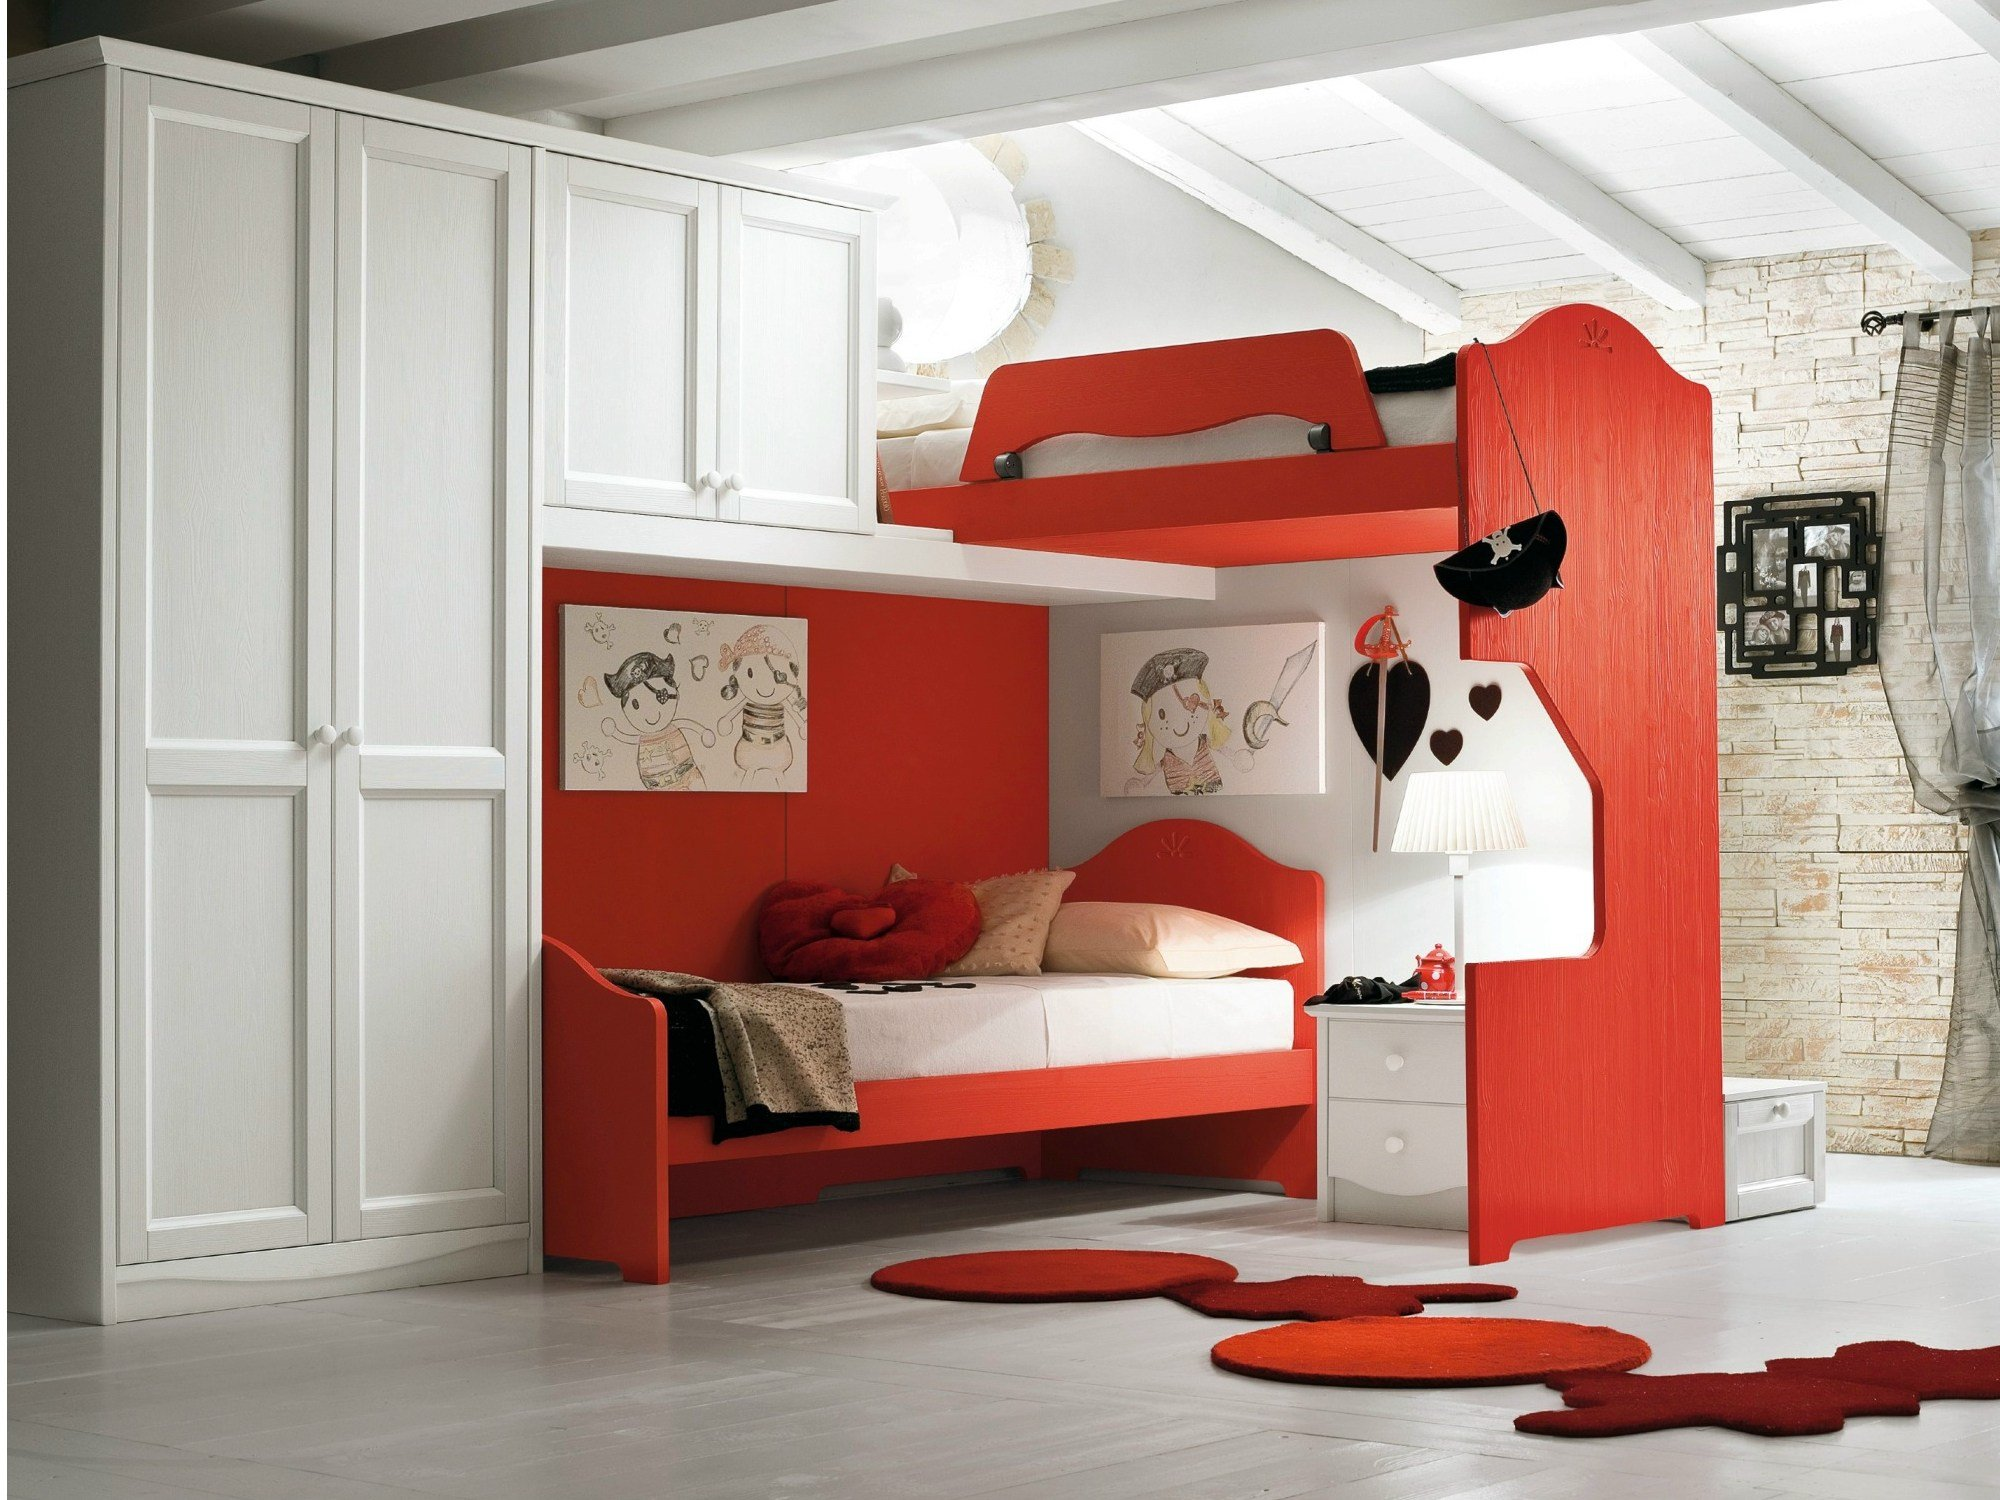 Best Loft Wooden Teenage Bedroom Every Day Night Composition 12 With Pictures